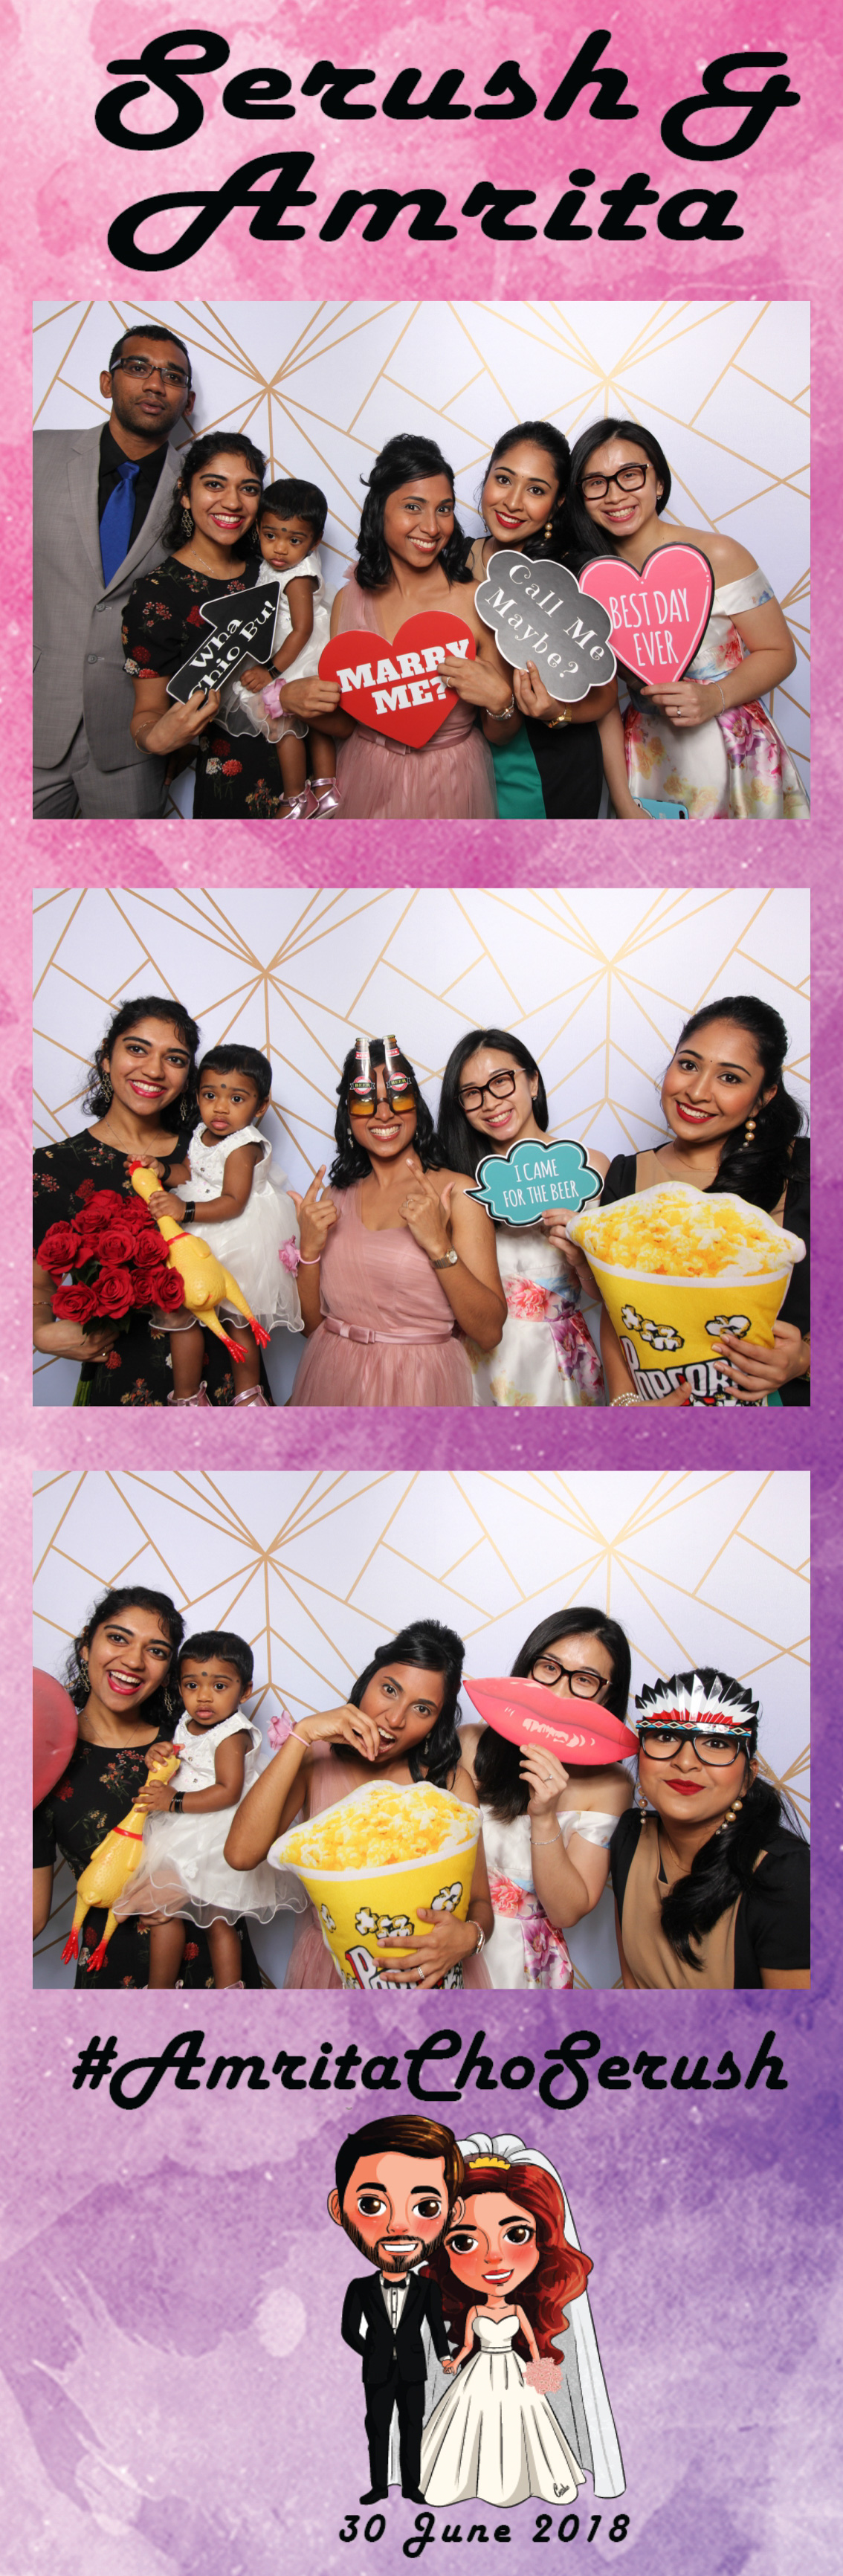 whoots photo booth singapore wedding (22